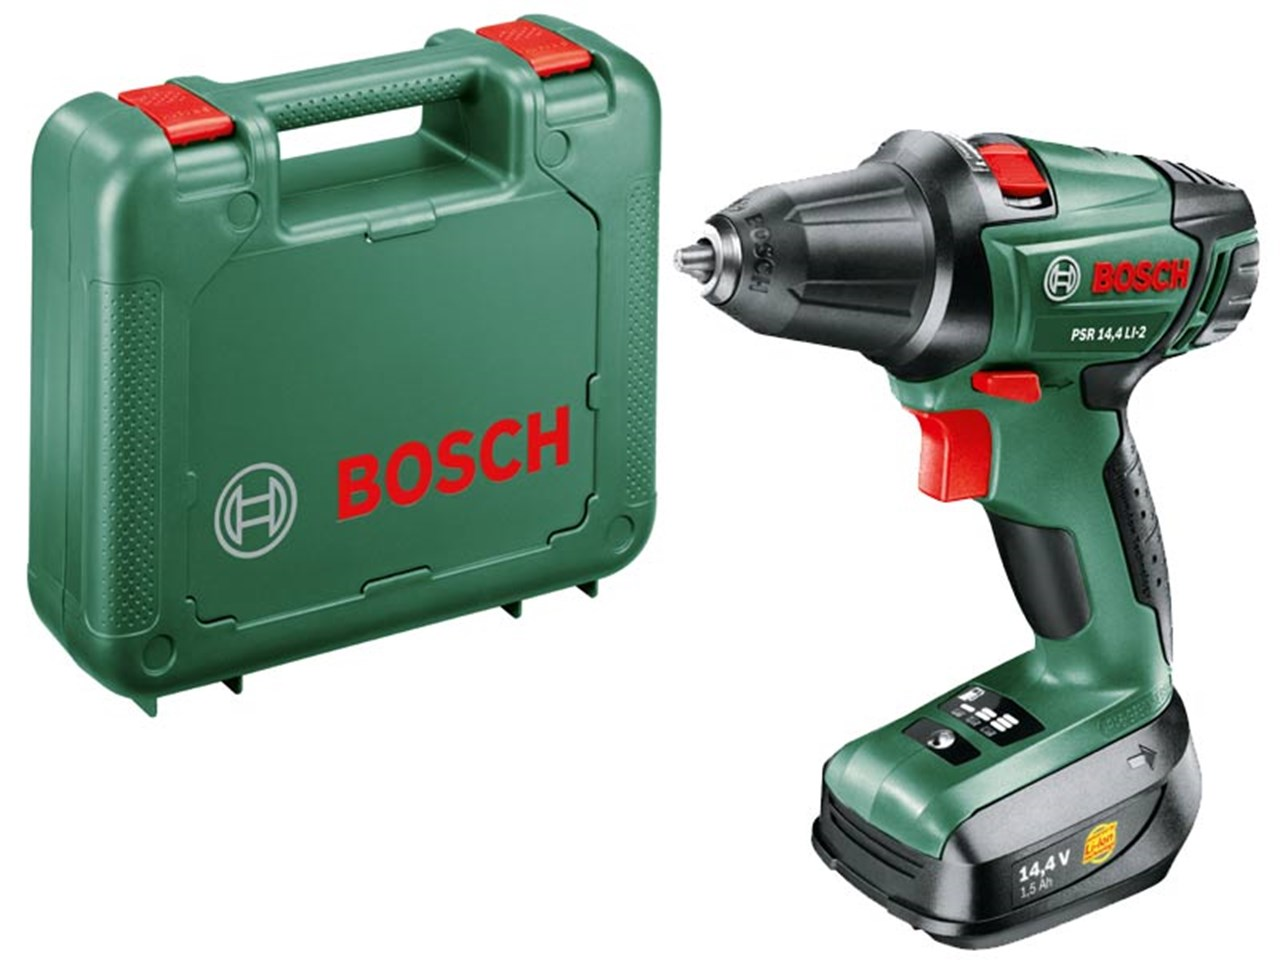 bosch green psr 14 4 li 2 2 speed drill driver 1 x li ion. Black Bedroom Furniture Sets. Home Design Ideas